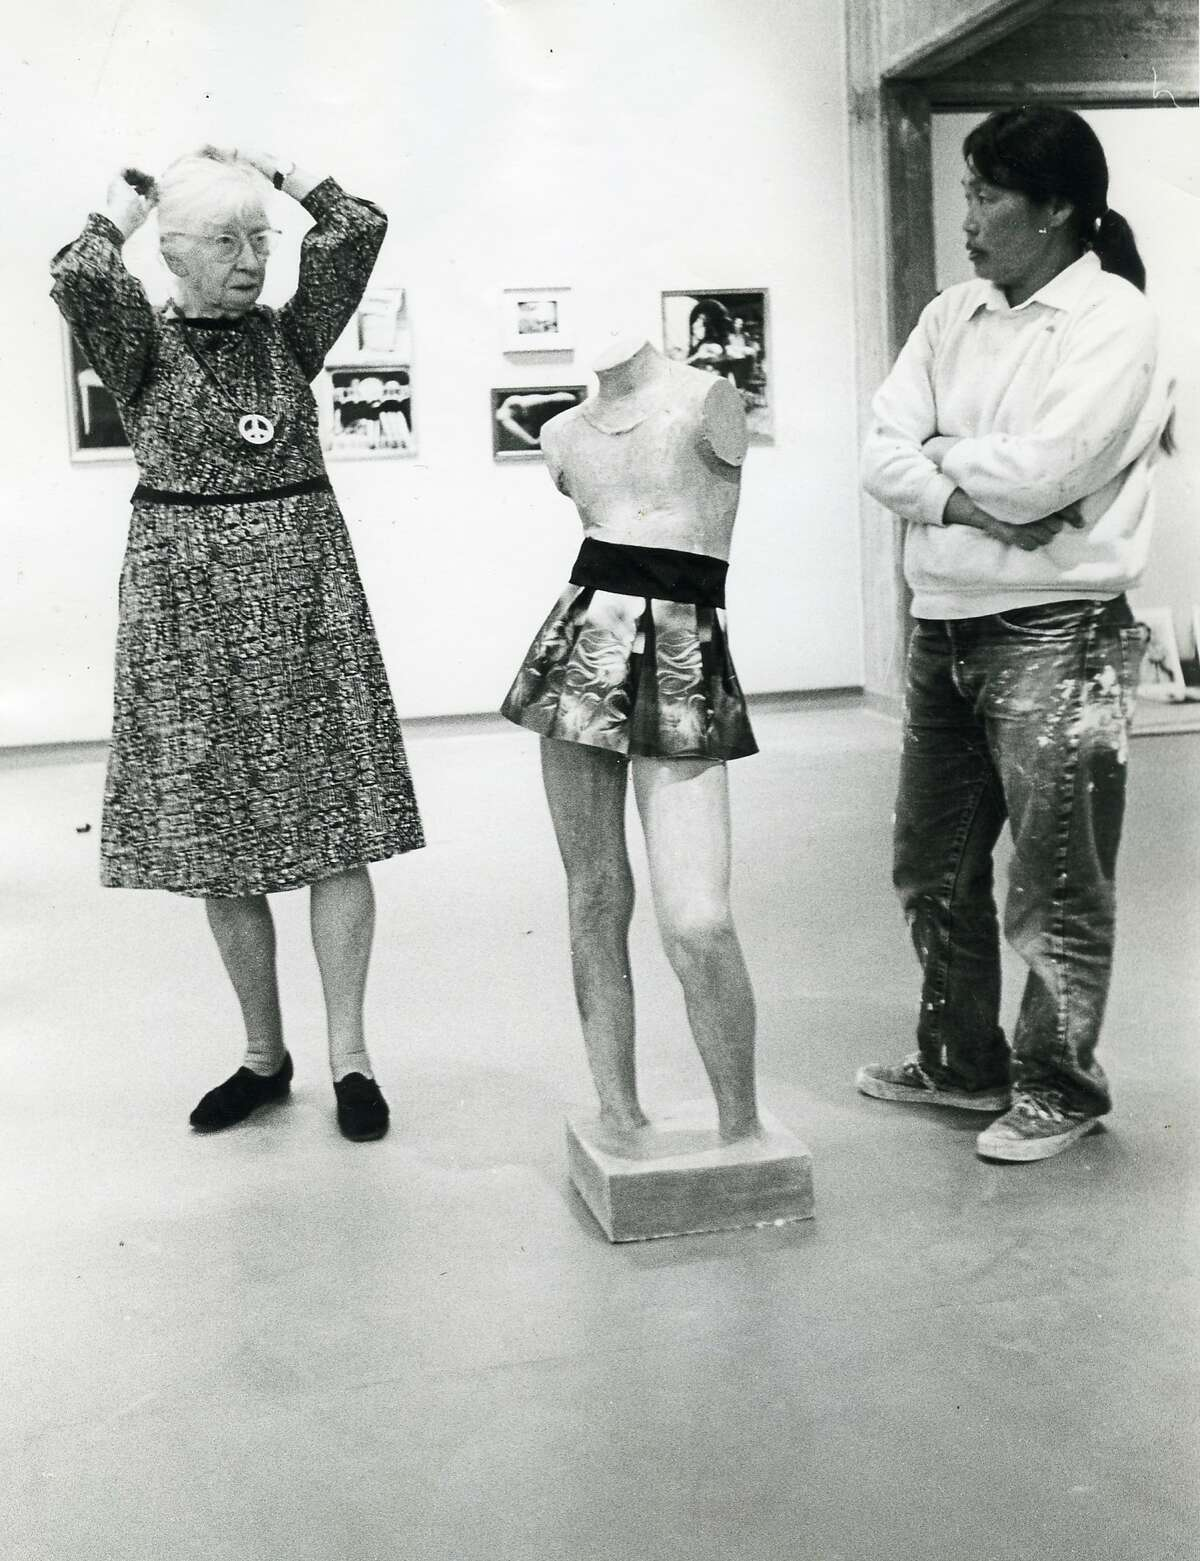 Ruth Asawa and Imogen Cunningham, July 1969, in photography exhibition U.S.A. In Your Heart, curated by Jerry Burchard.